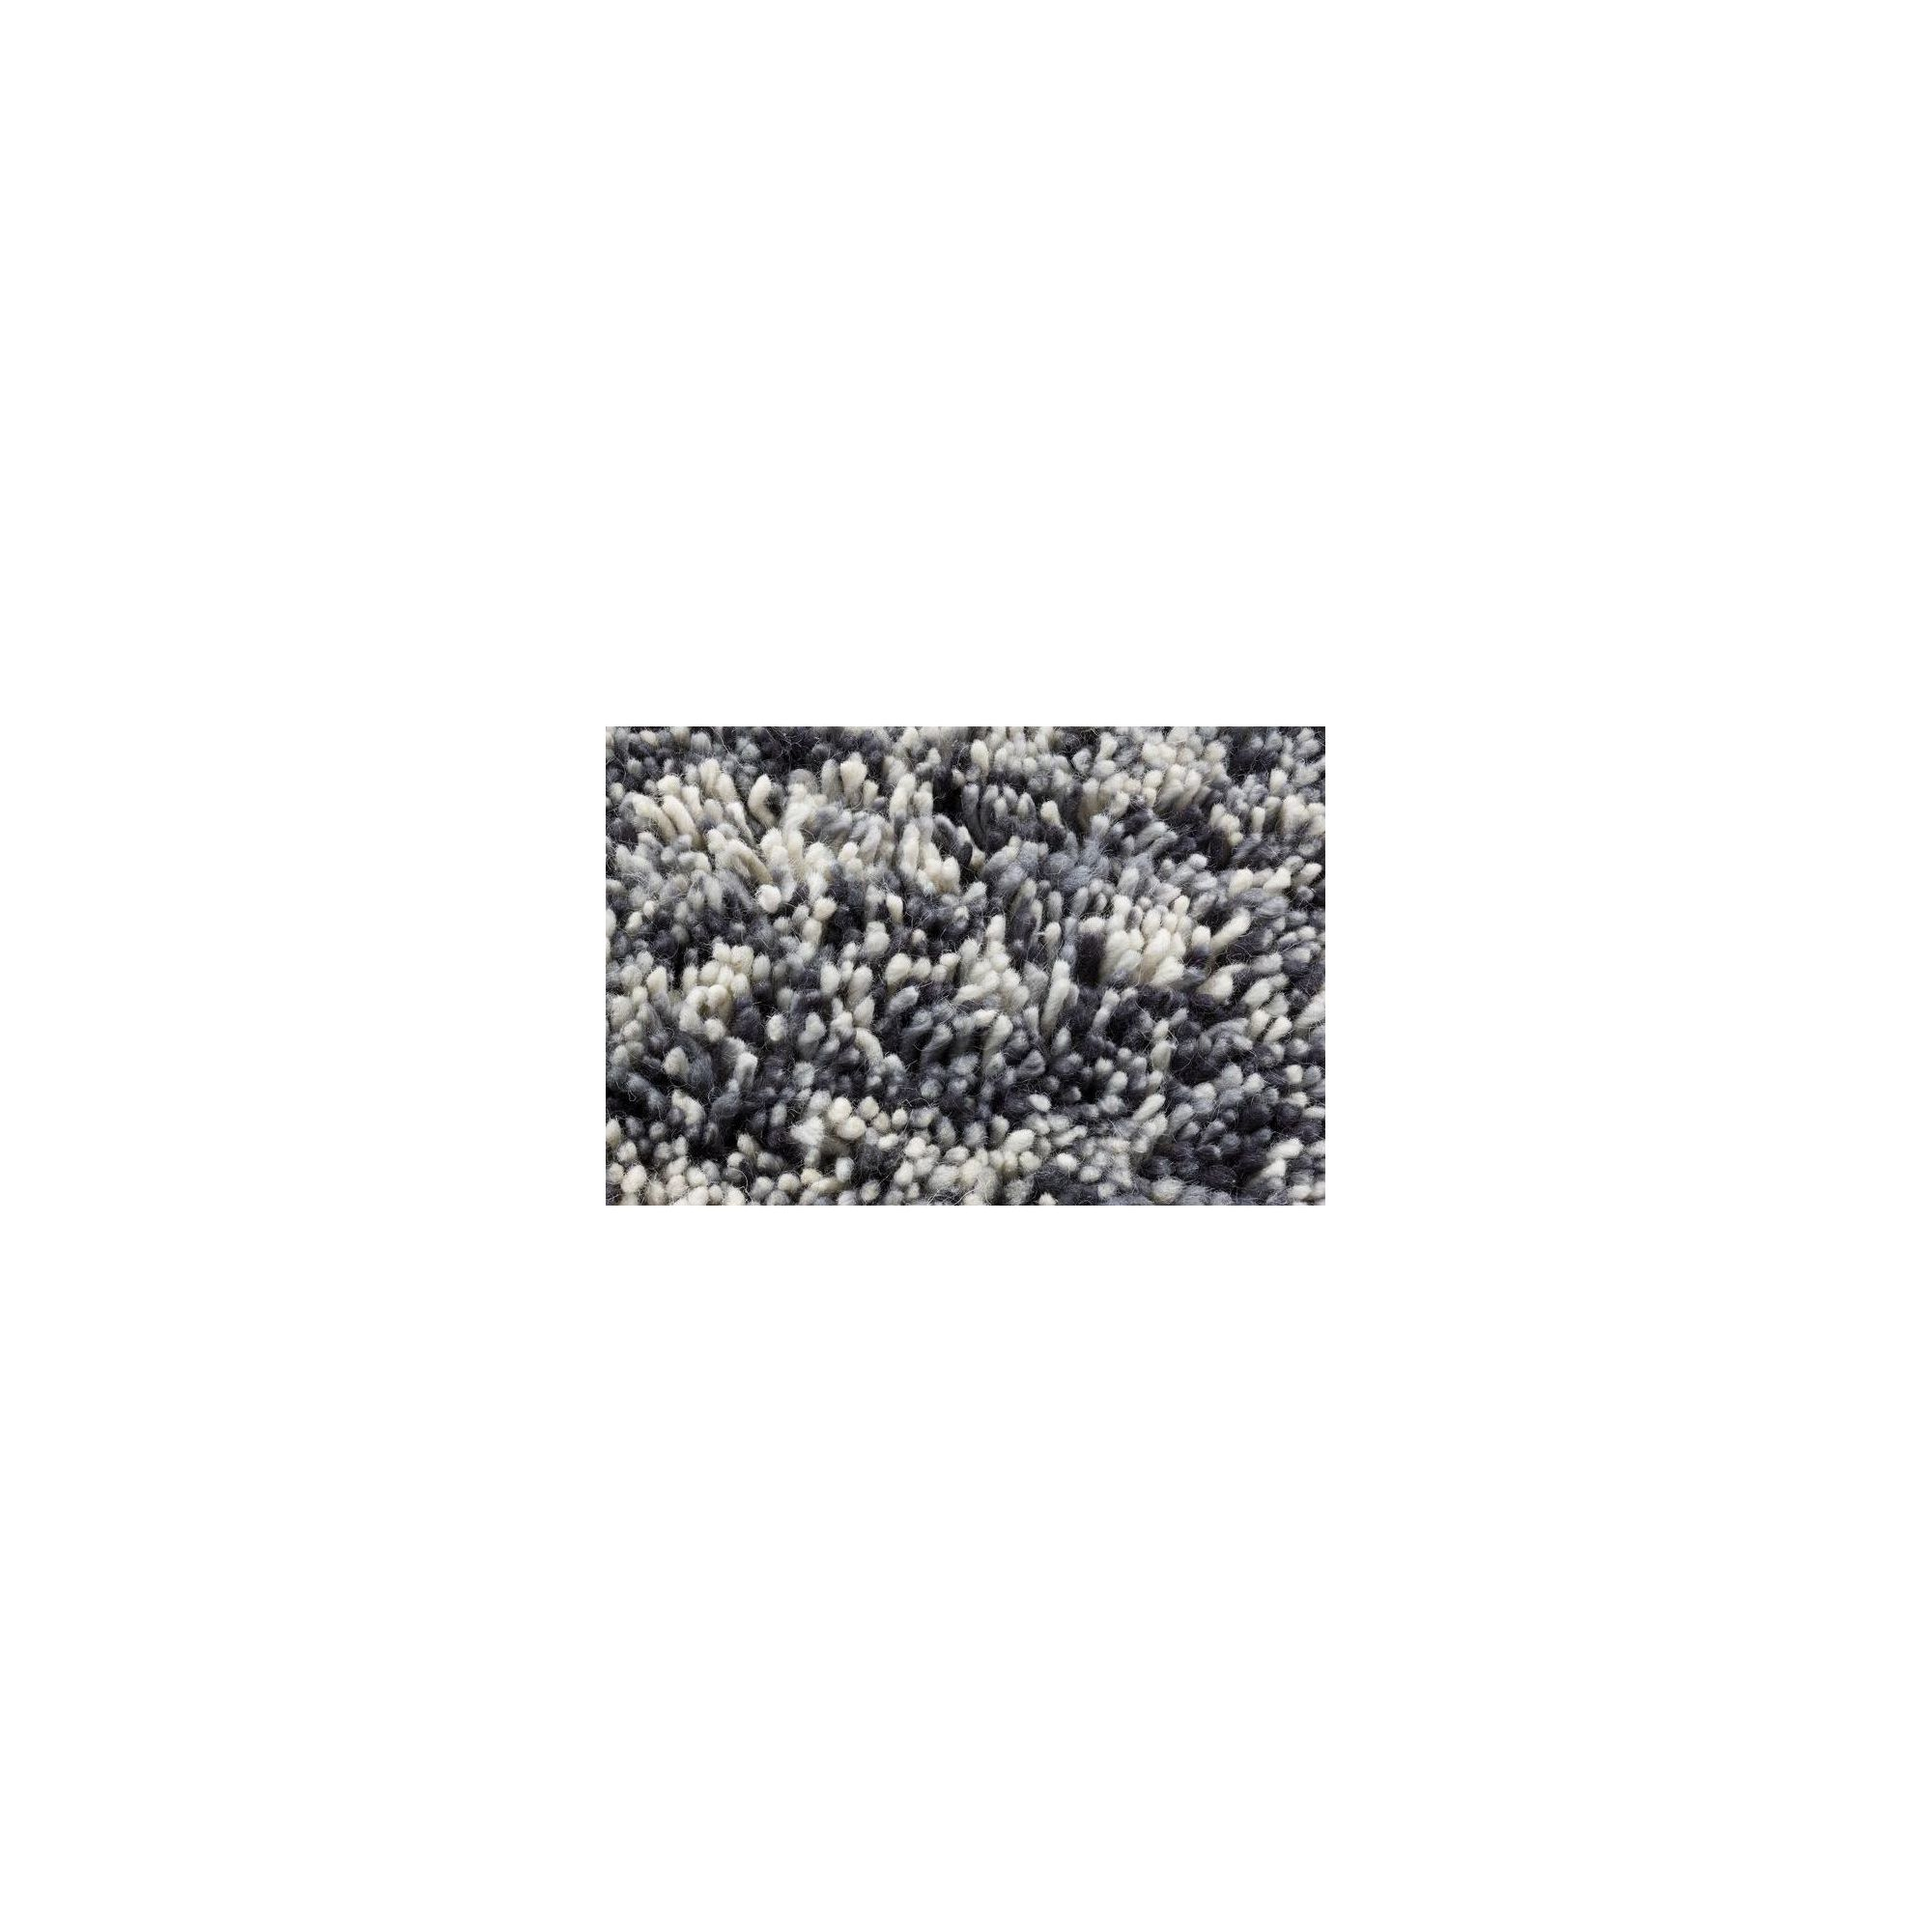 Linie Design Coral Granite Shag Rug - 240cm x 170cm at Tesco Direct